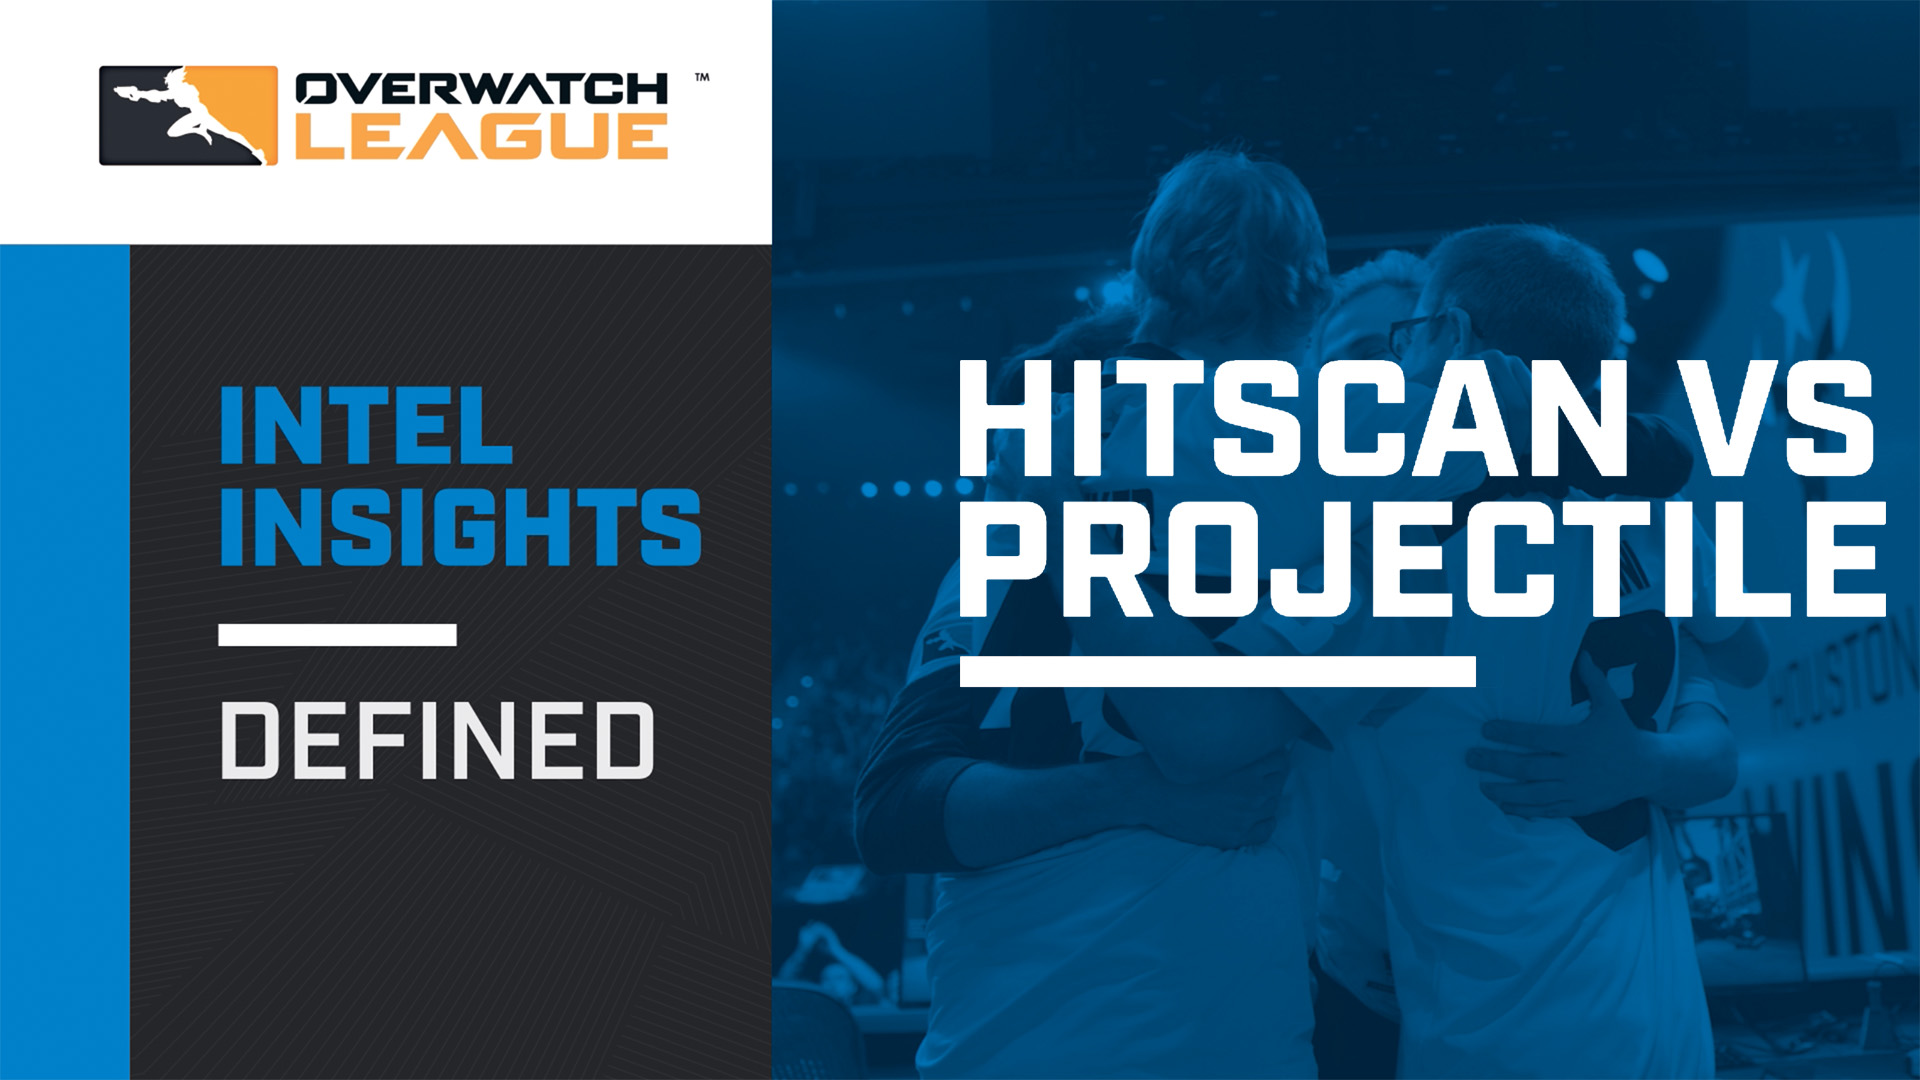 Defined: Hitscan vs Projectile